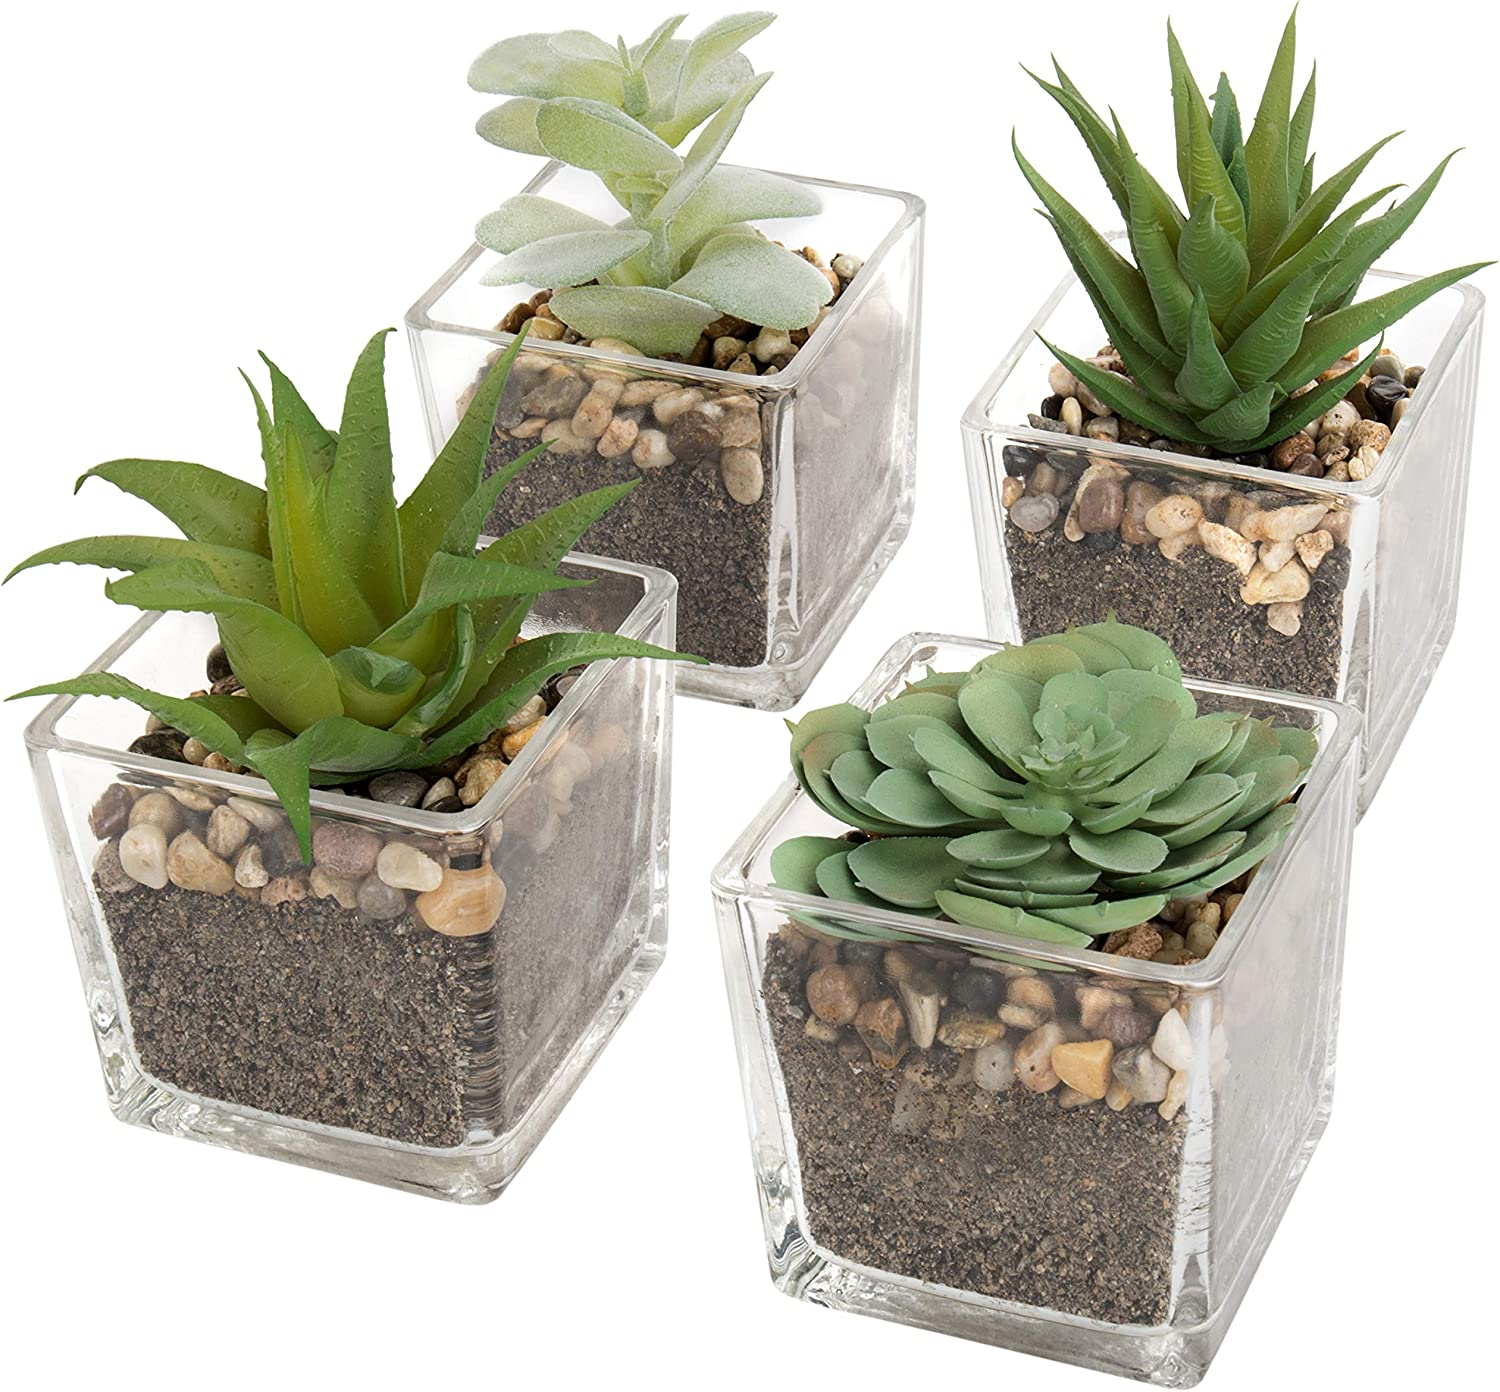 MyGift Assorted Artificial Echeveria Succulent Plants in Square Clear Glass Pots, Set of 4